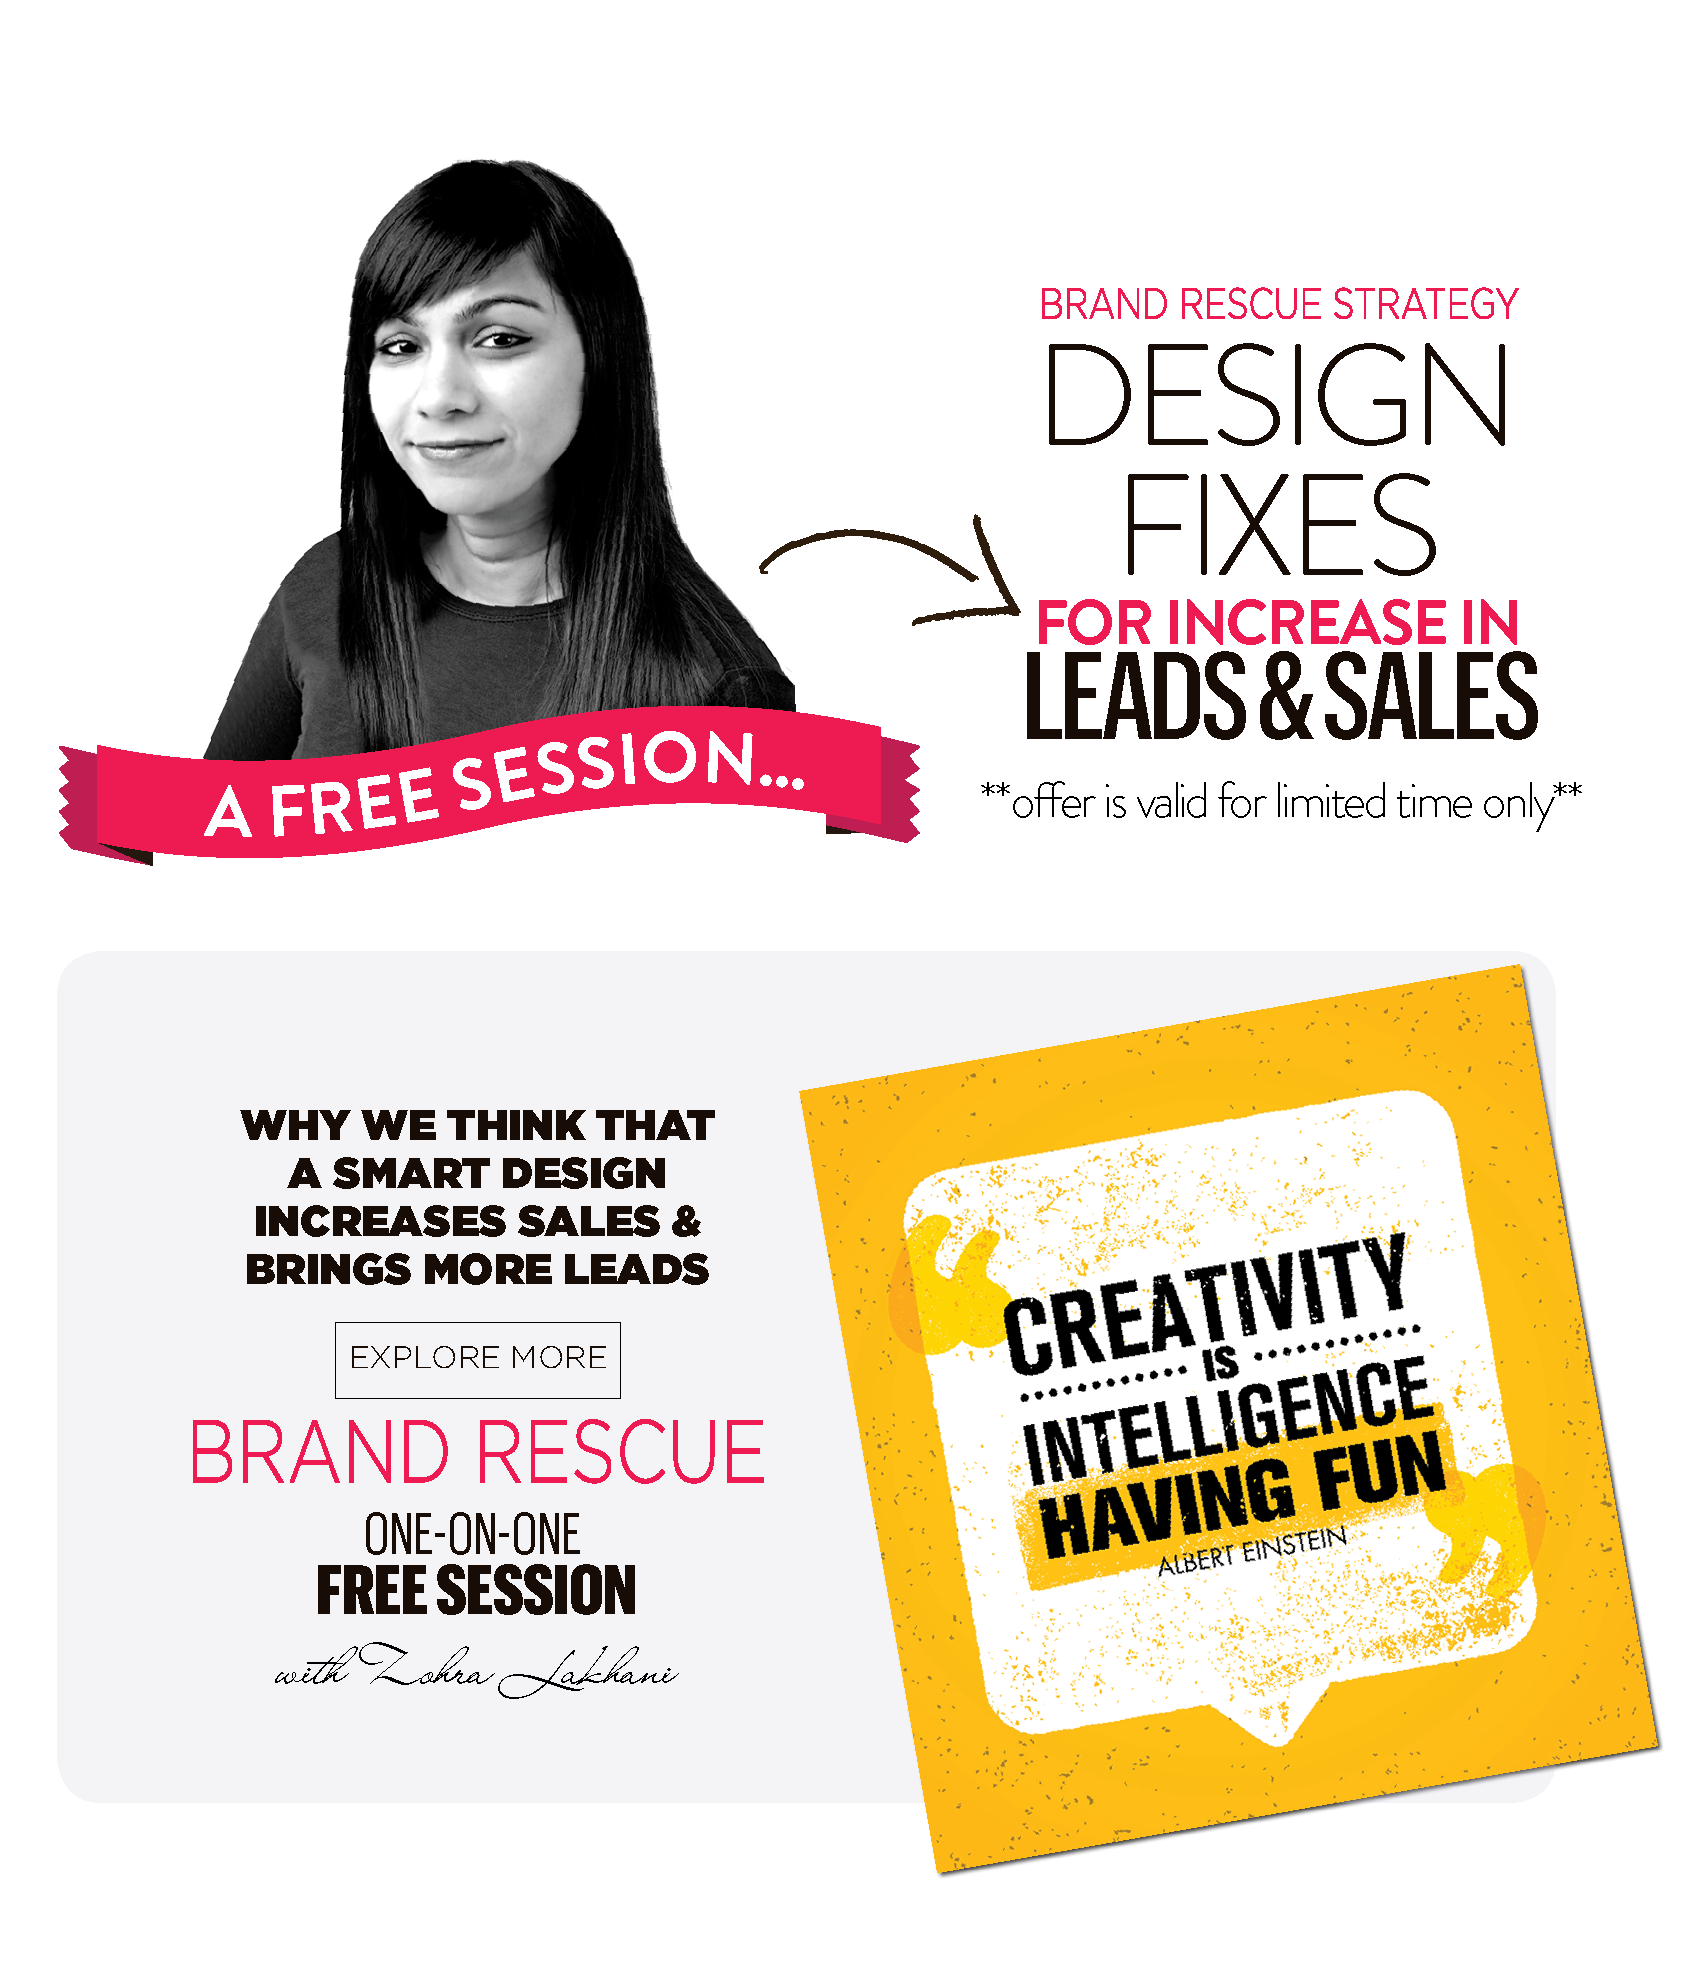 Book Free Brand Rescue Session With Zohra Lakhani | Design Fixes For Increase In Leads & Sales